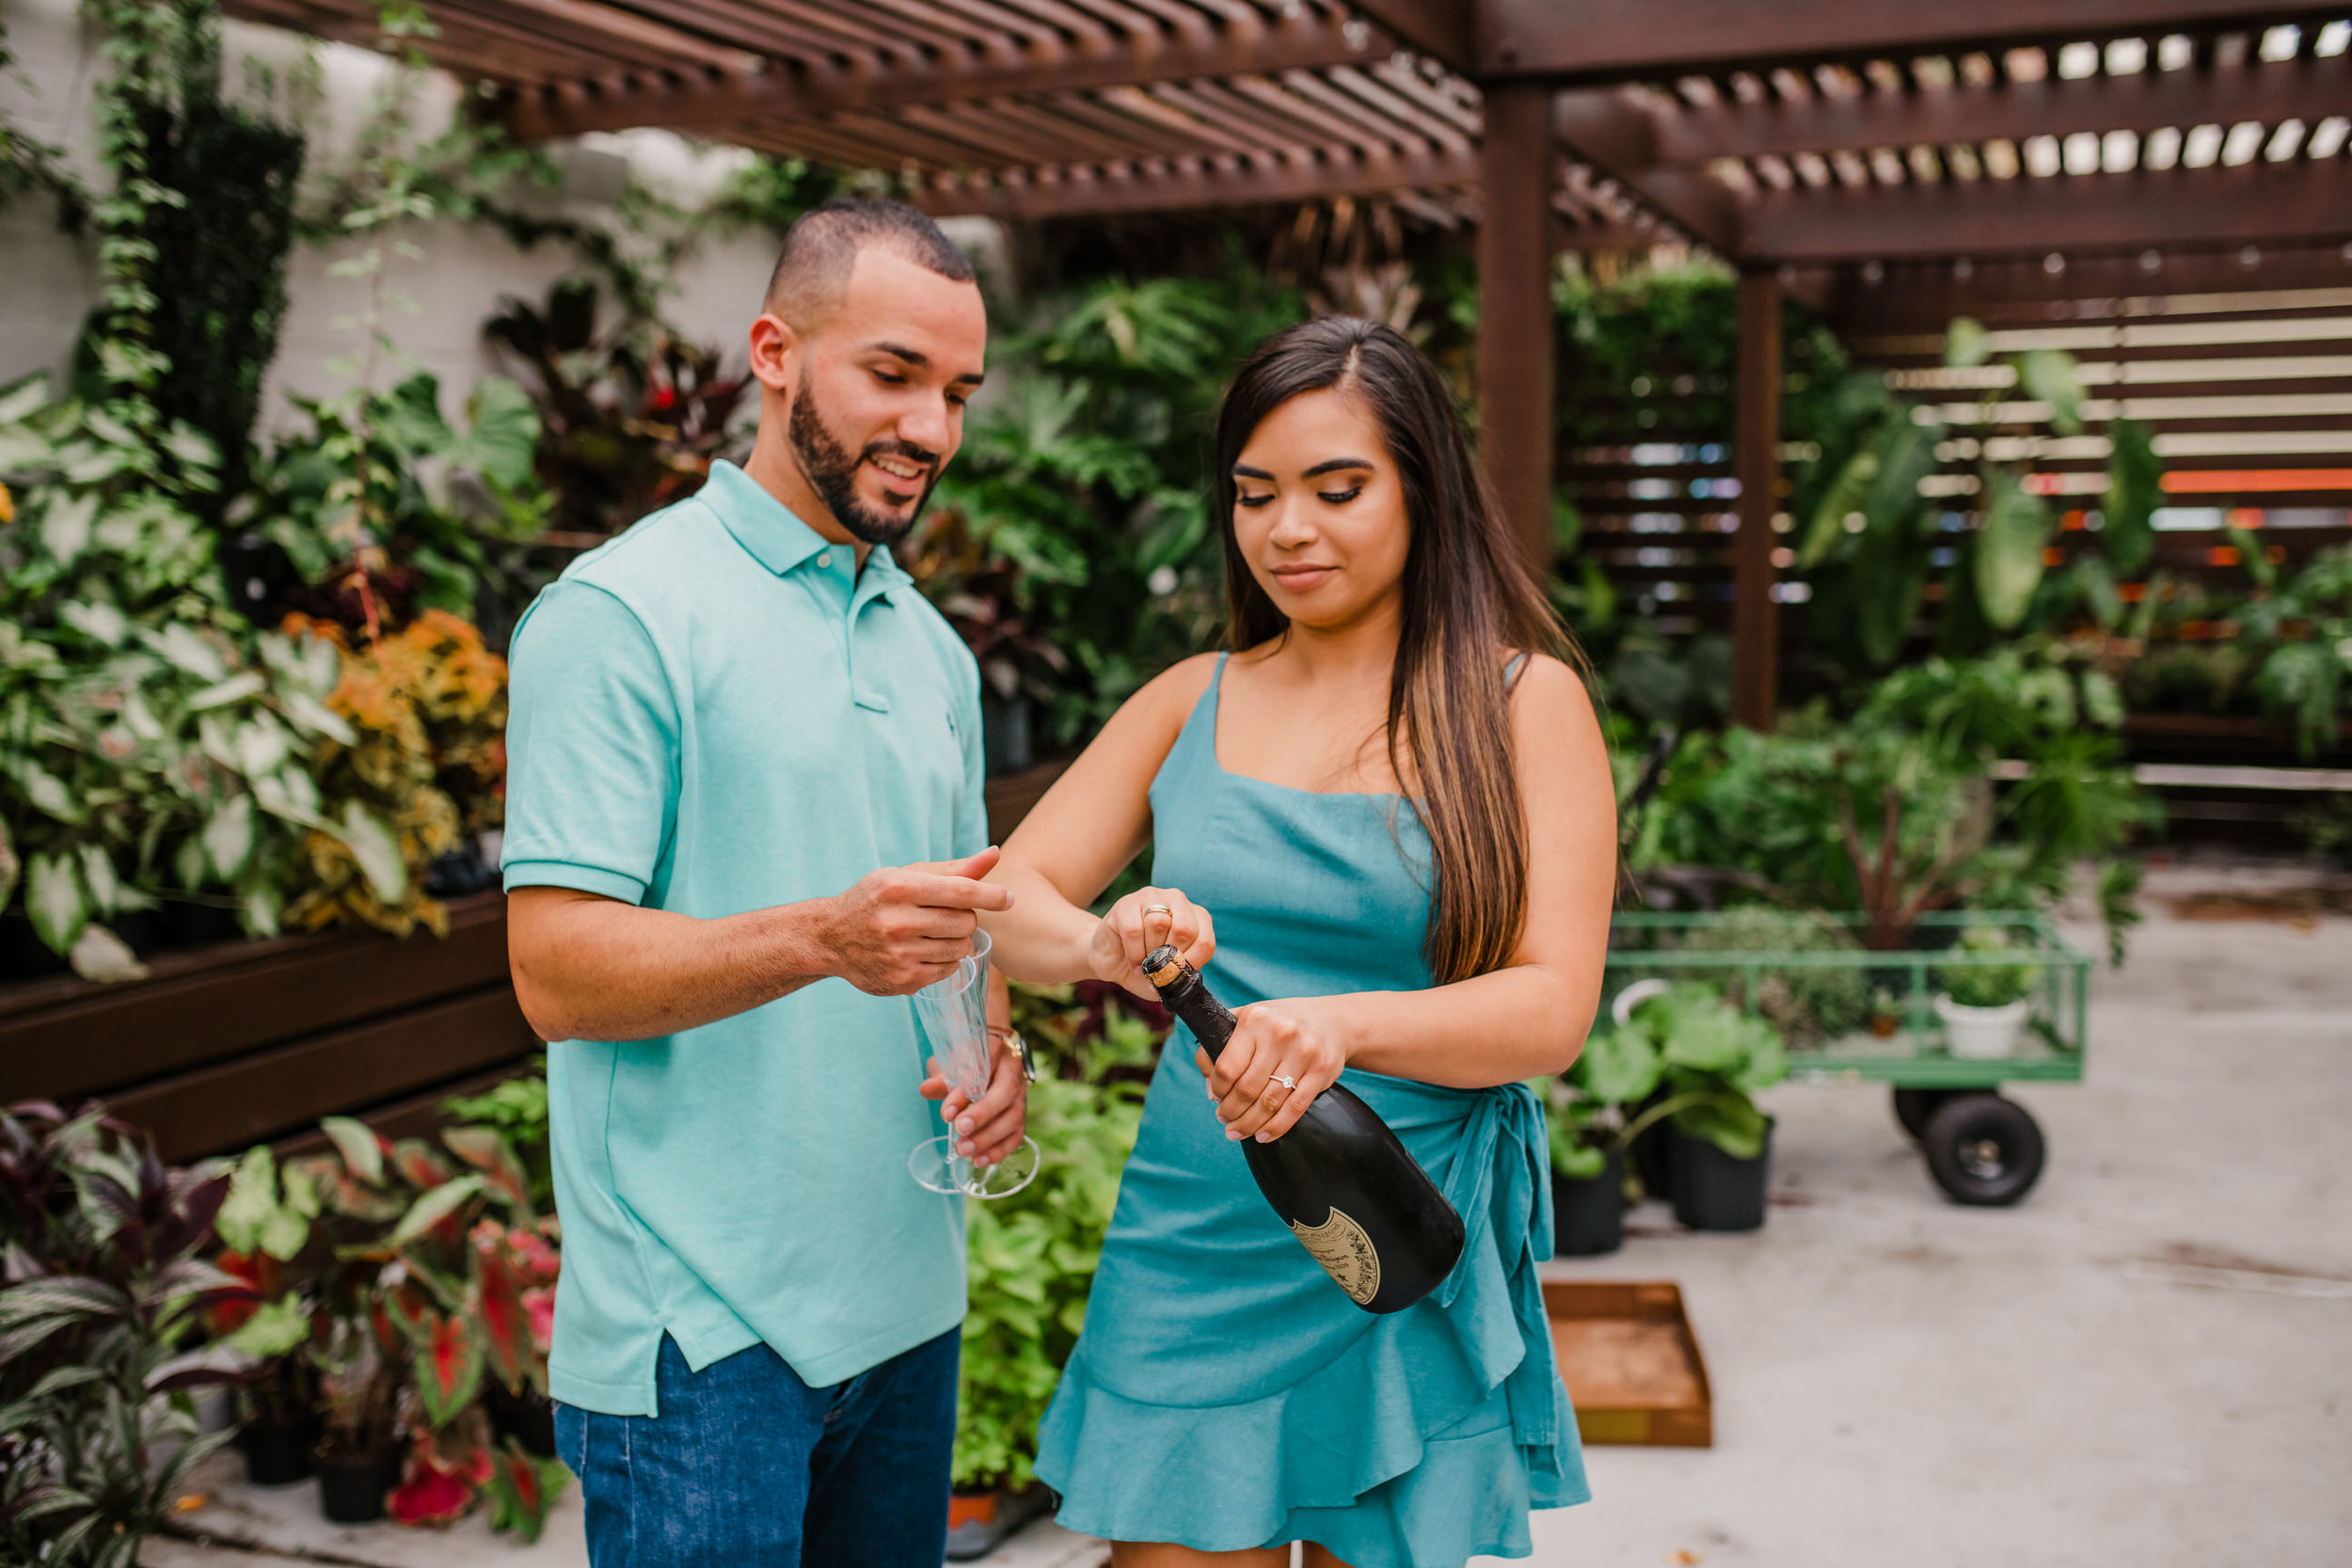 Valeria-Jonathan-Fancy-Free-Nursery-Tampa-Florida-Proposal-264.jpg